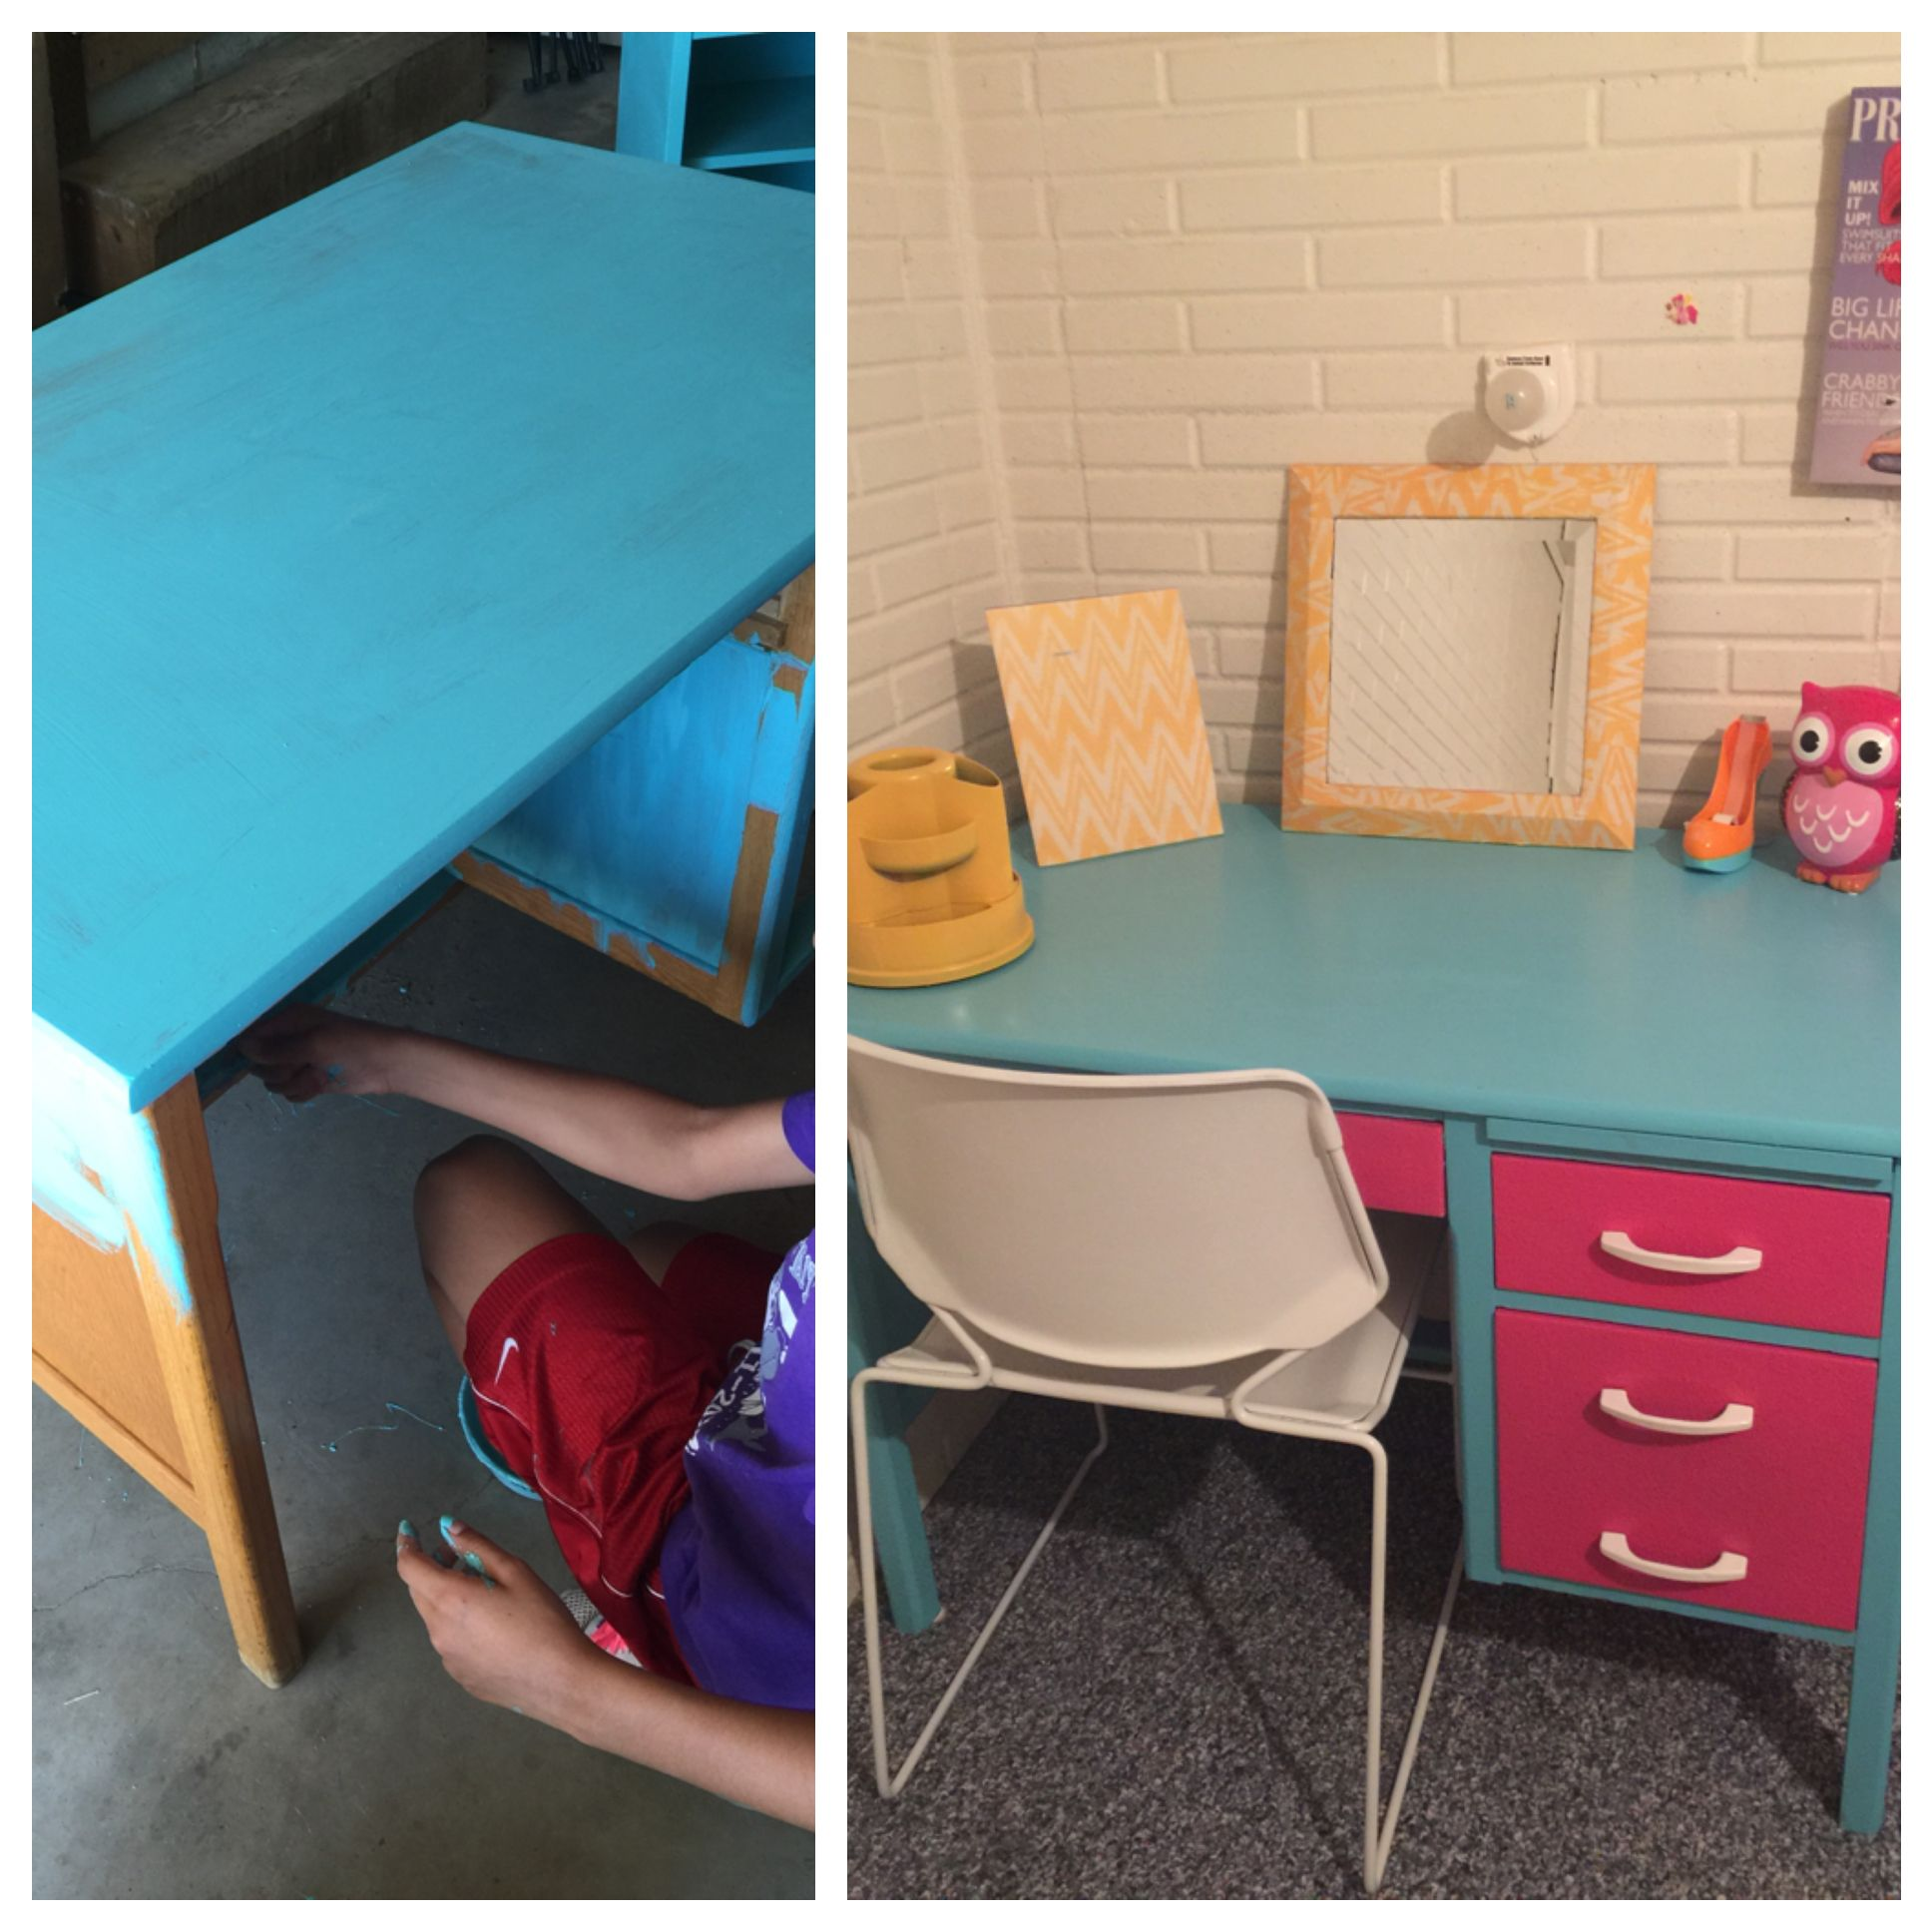 Amaya and I refinished her desk with homemade chalk paint. Spray painted her chair and pencil holder. Kalandrah and  Cassandra helped Mod Podge the Mirror. Amaya loves it❤️ Thank you for helping girls. Almost forgot to thank Jose for helping as well.